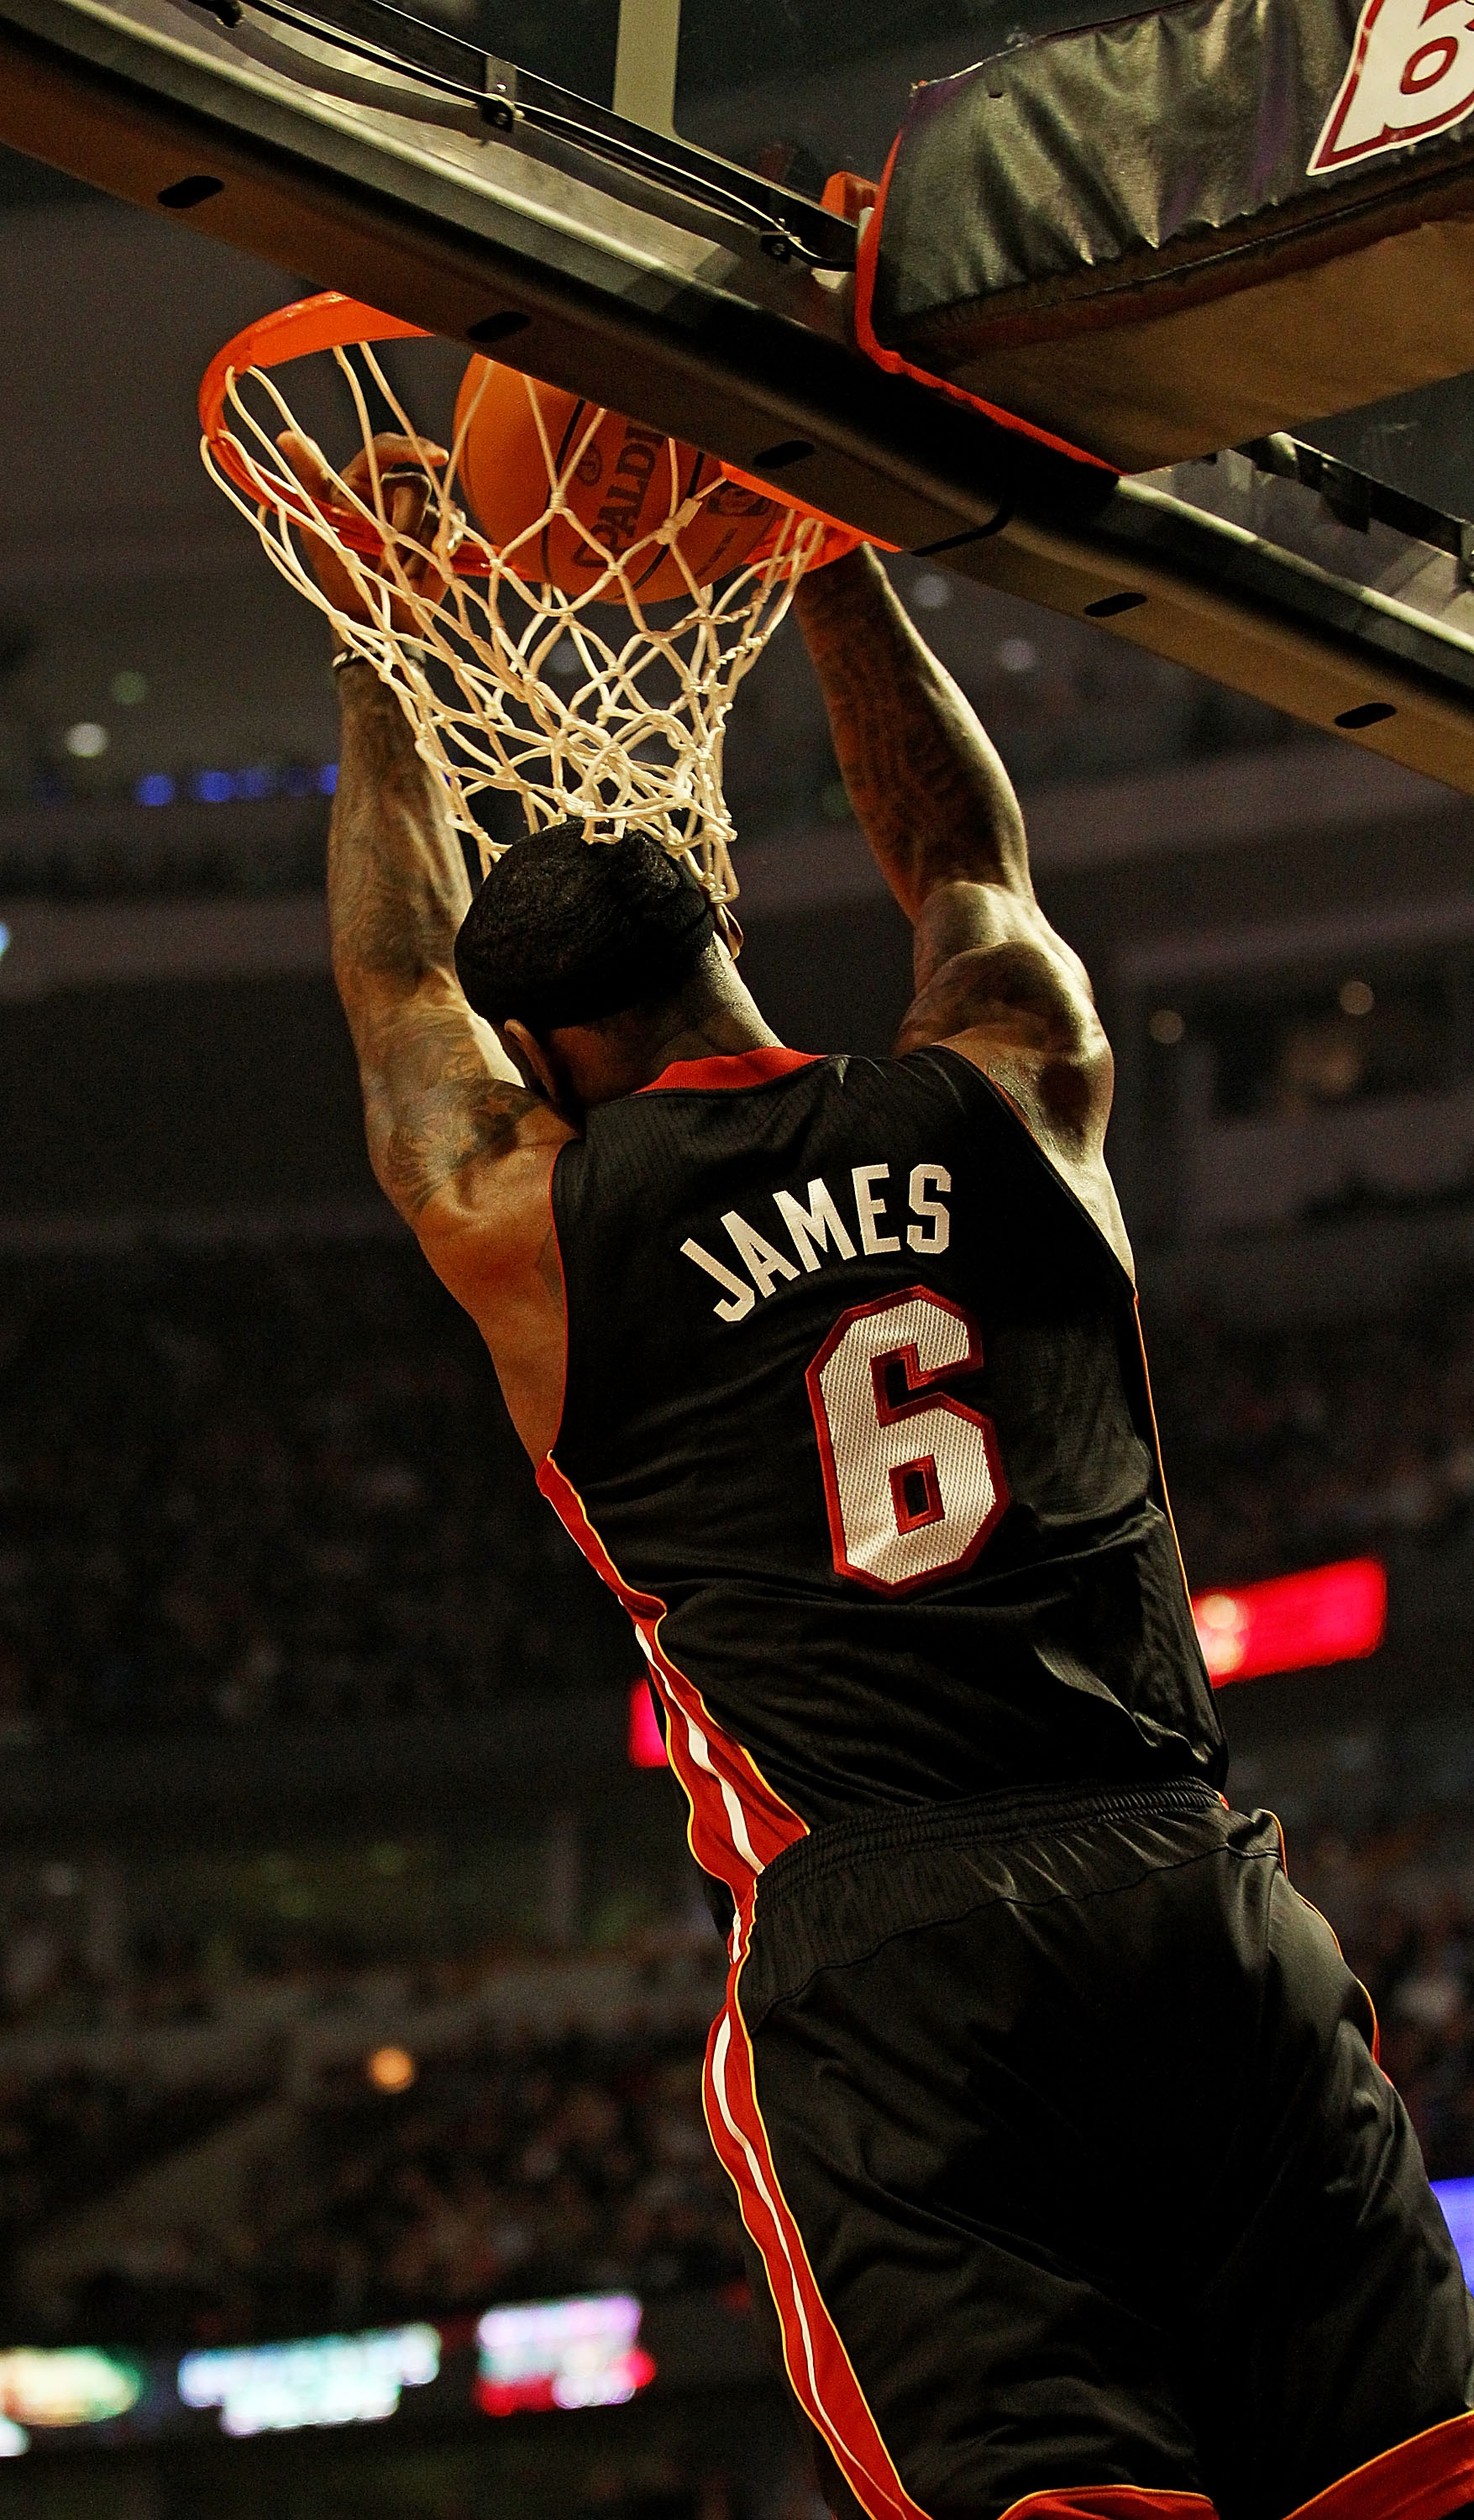 CHICAGO, IL - FEBRUARY 24: LeBron James #6 of the Miami Heat puts in a reverse dunk against the Chicago Bulls at the United Center on February 24, 2011 in Chicago, Illinois. NOTE TO USER: User expressly acknowledges and agrees that, by downloading and/or